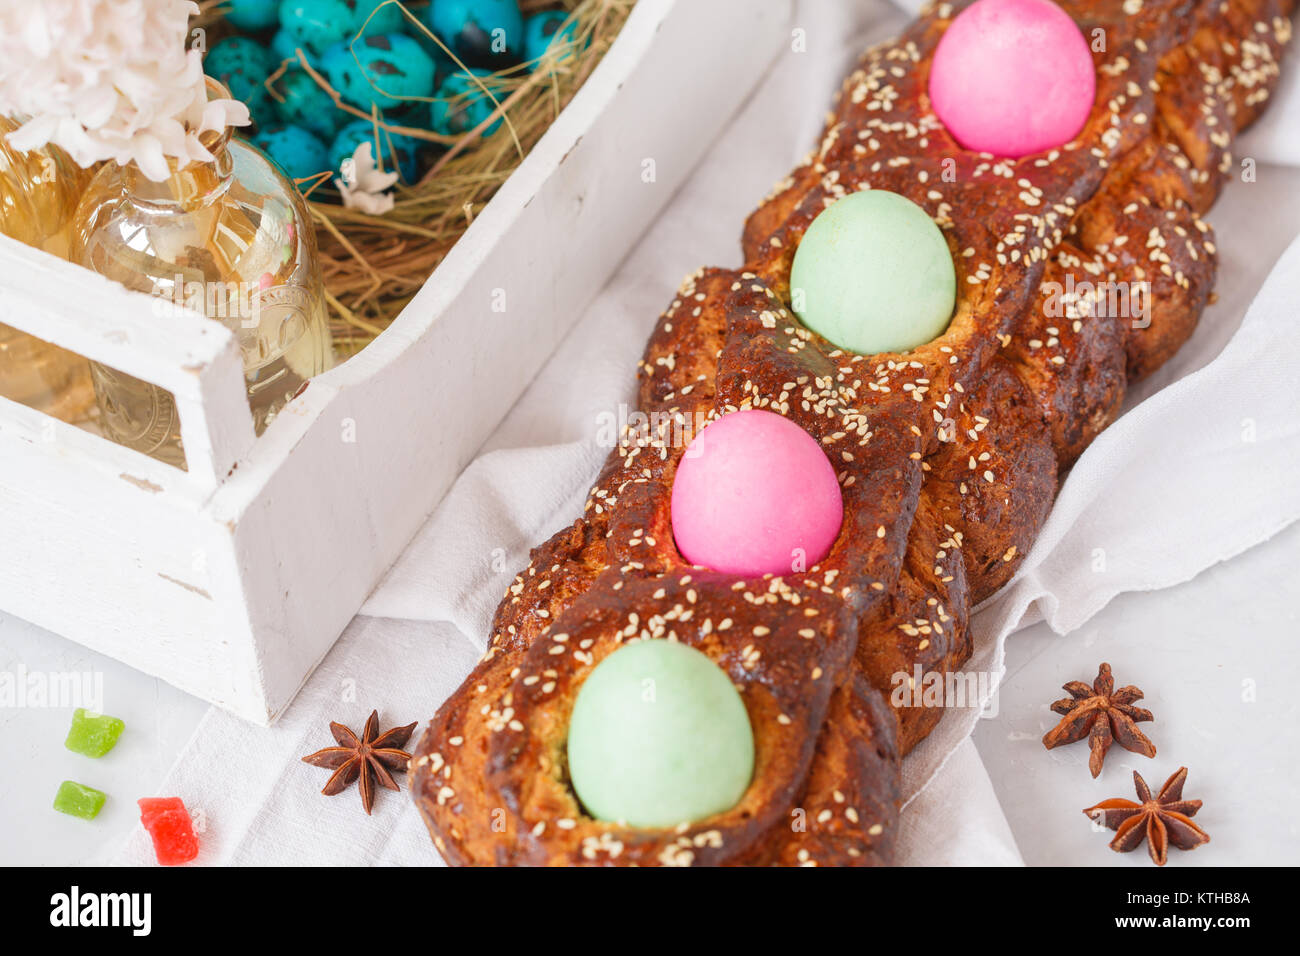 Traditional Greek Easter bread - tsoureki in Easter decorations with painted eggs and flowers. Easter Festival concept. - Stock Image